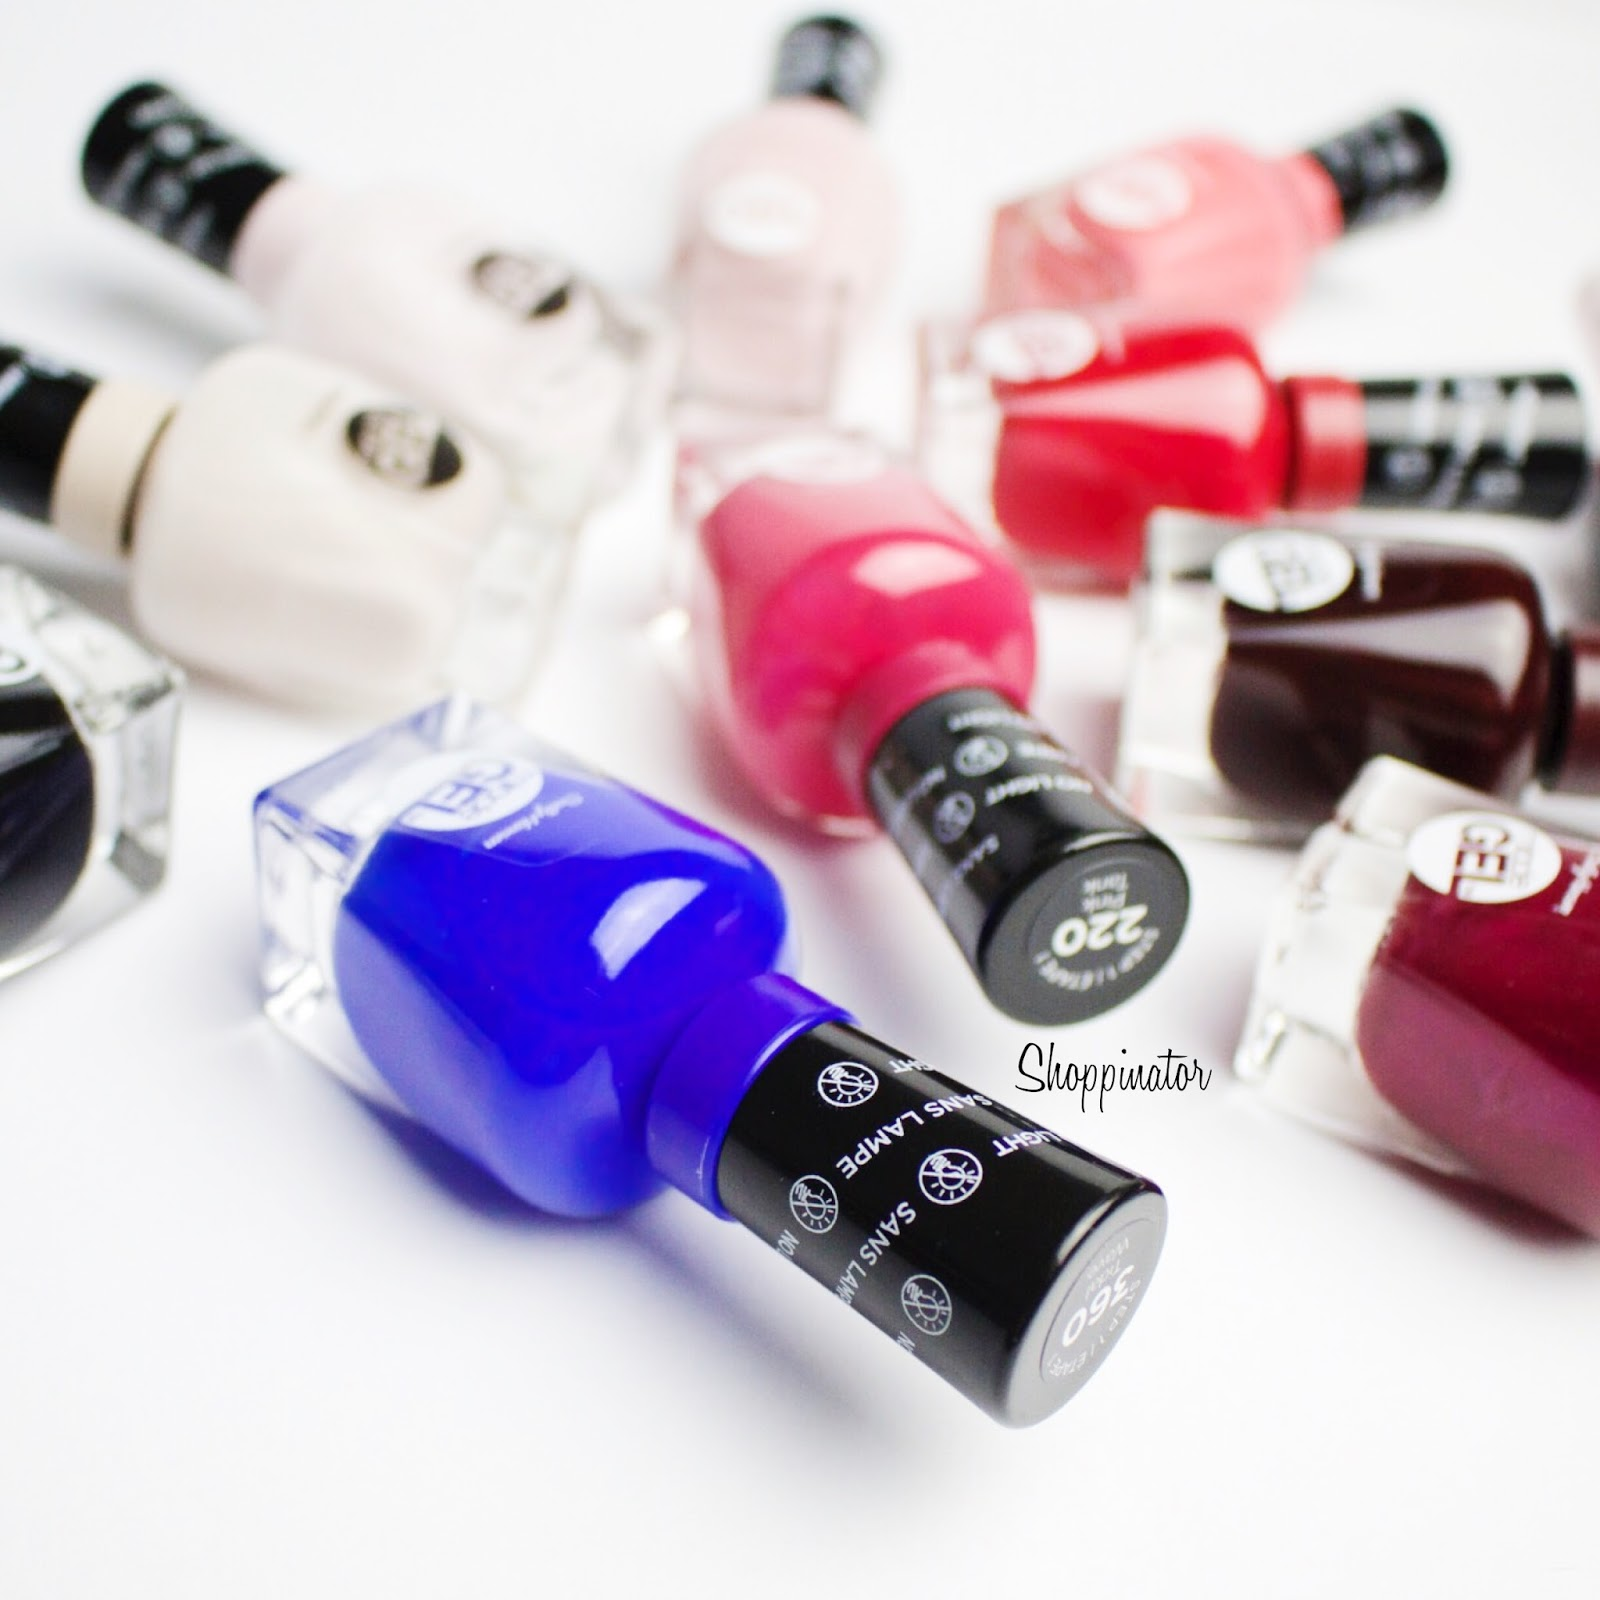 Shoppinator-Sally-Hansen-Gellack-Nagellack-Gelnagellack-Gel-Miracle-Mani-Miracle-Gel-Creme-de-la-Creme-Birthday-Suit-Pinky-Promise-Pretty-Piggy-Pink-Tank-Red-Eye-Mad-Women-Wine-Stock-Tidal-Wave-Blacky-O-Standardsortiment-blau-pink-nude-schwarz-lila-rose-rosa